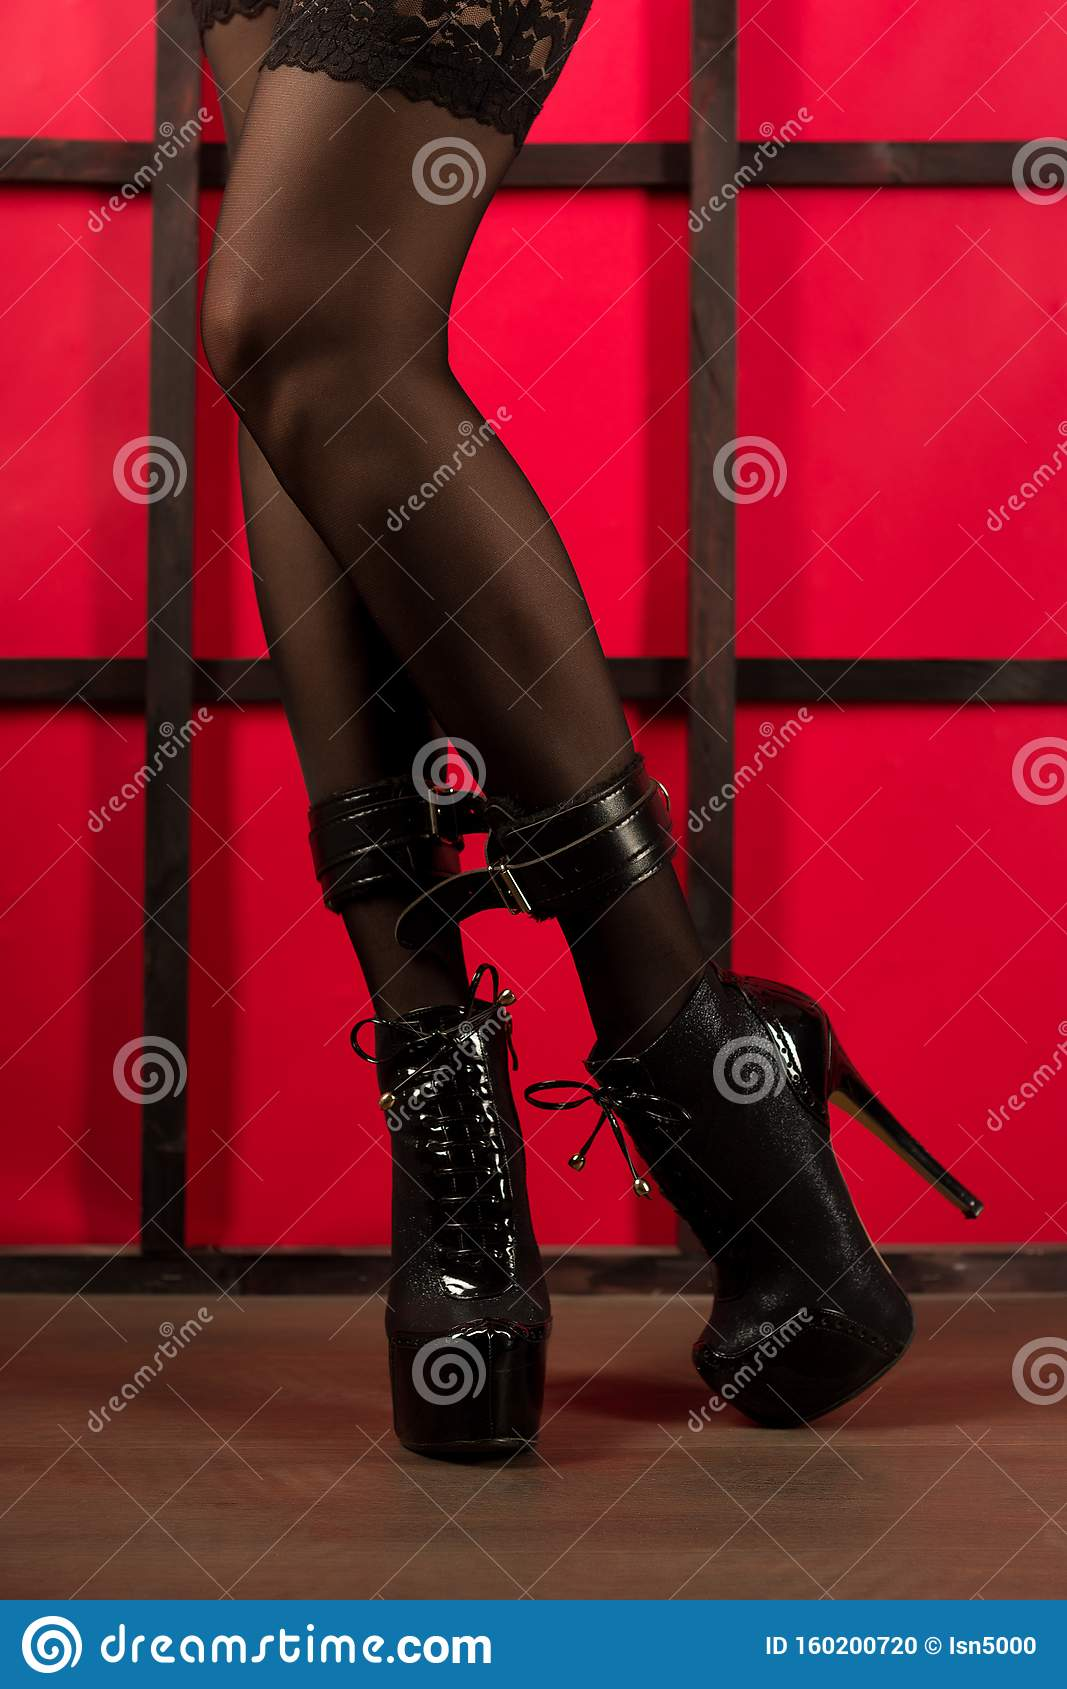 Sexy women in high heels bondage